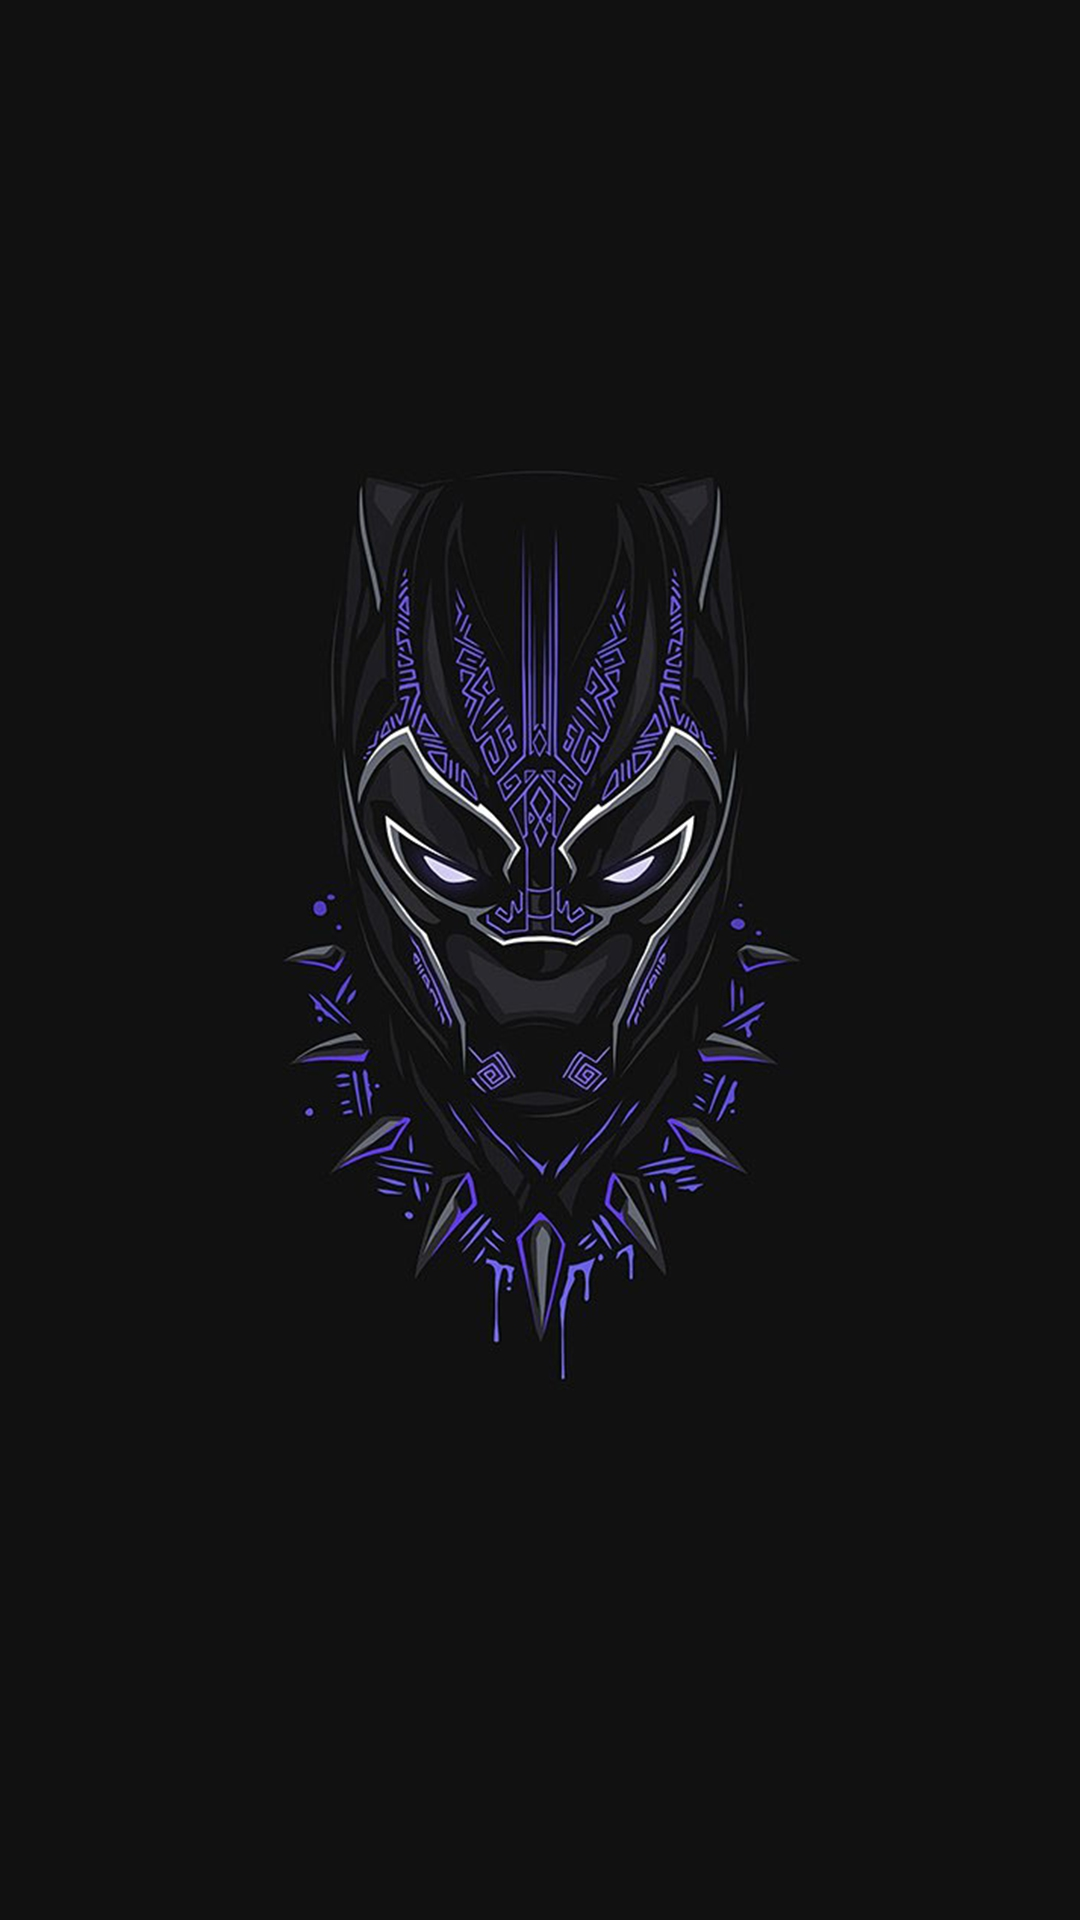 Cute But Psycho Iphone Wallpaper Black Panther Purple Minimal Iphone Wallpaper Iphone